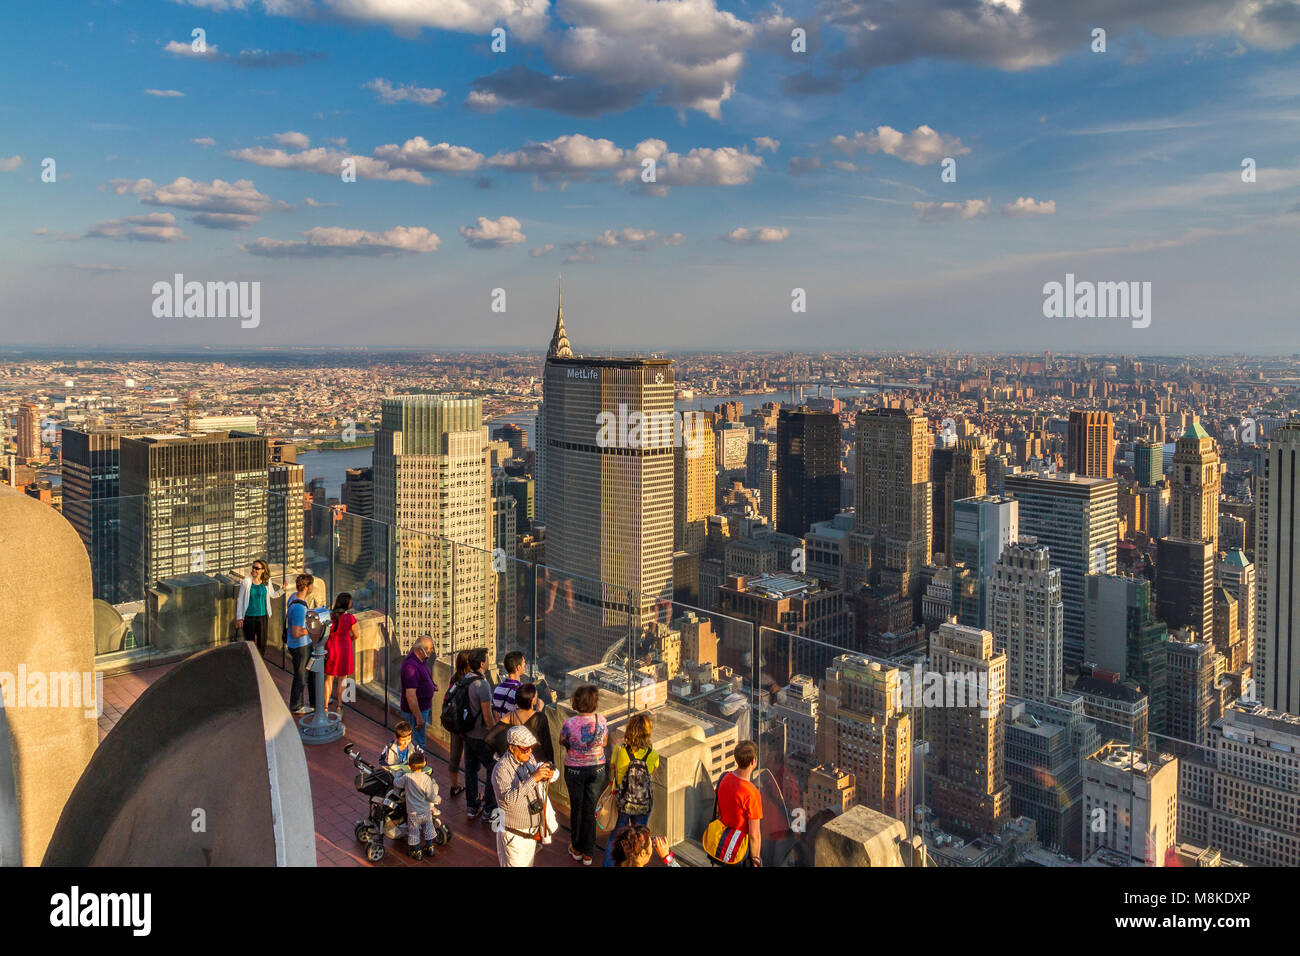 Late afternoon sunshine on Manhattan from The Top Of The Rock Observation Deck on the top Rockefeller Center Building - Stock Image